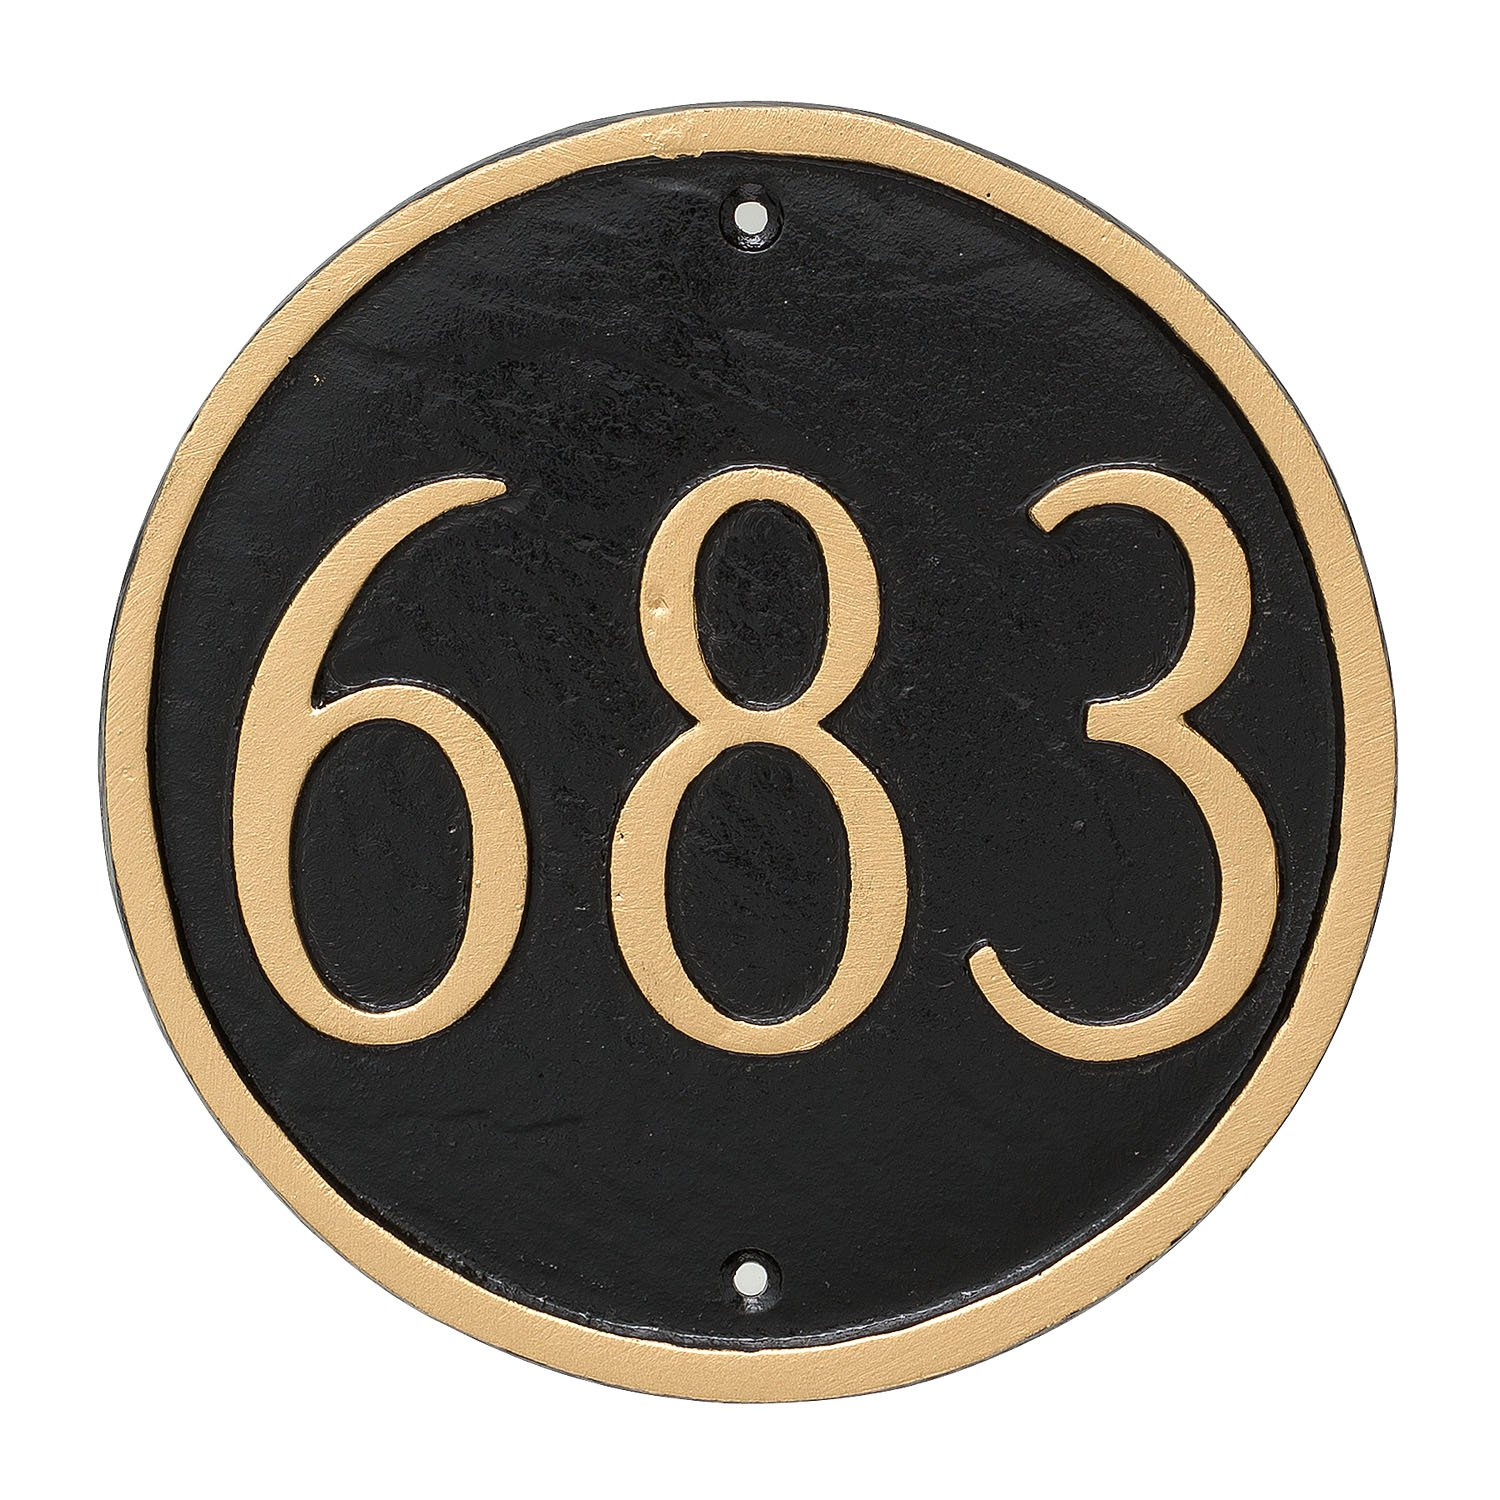 Montague Metal Circle Address Sign Plaque, 6.5 x 6.5, Black/Gold 6.5 x 6.5 PCS-0001P1-W-BG